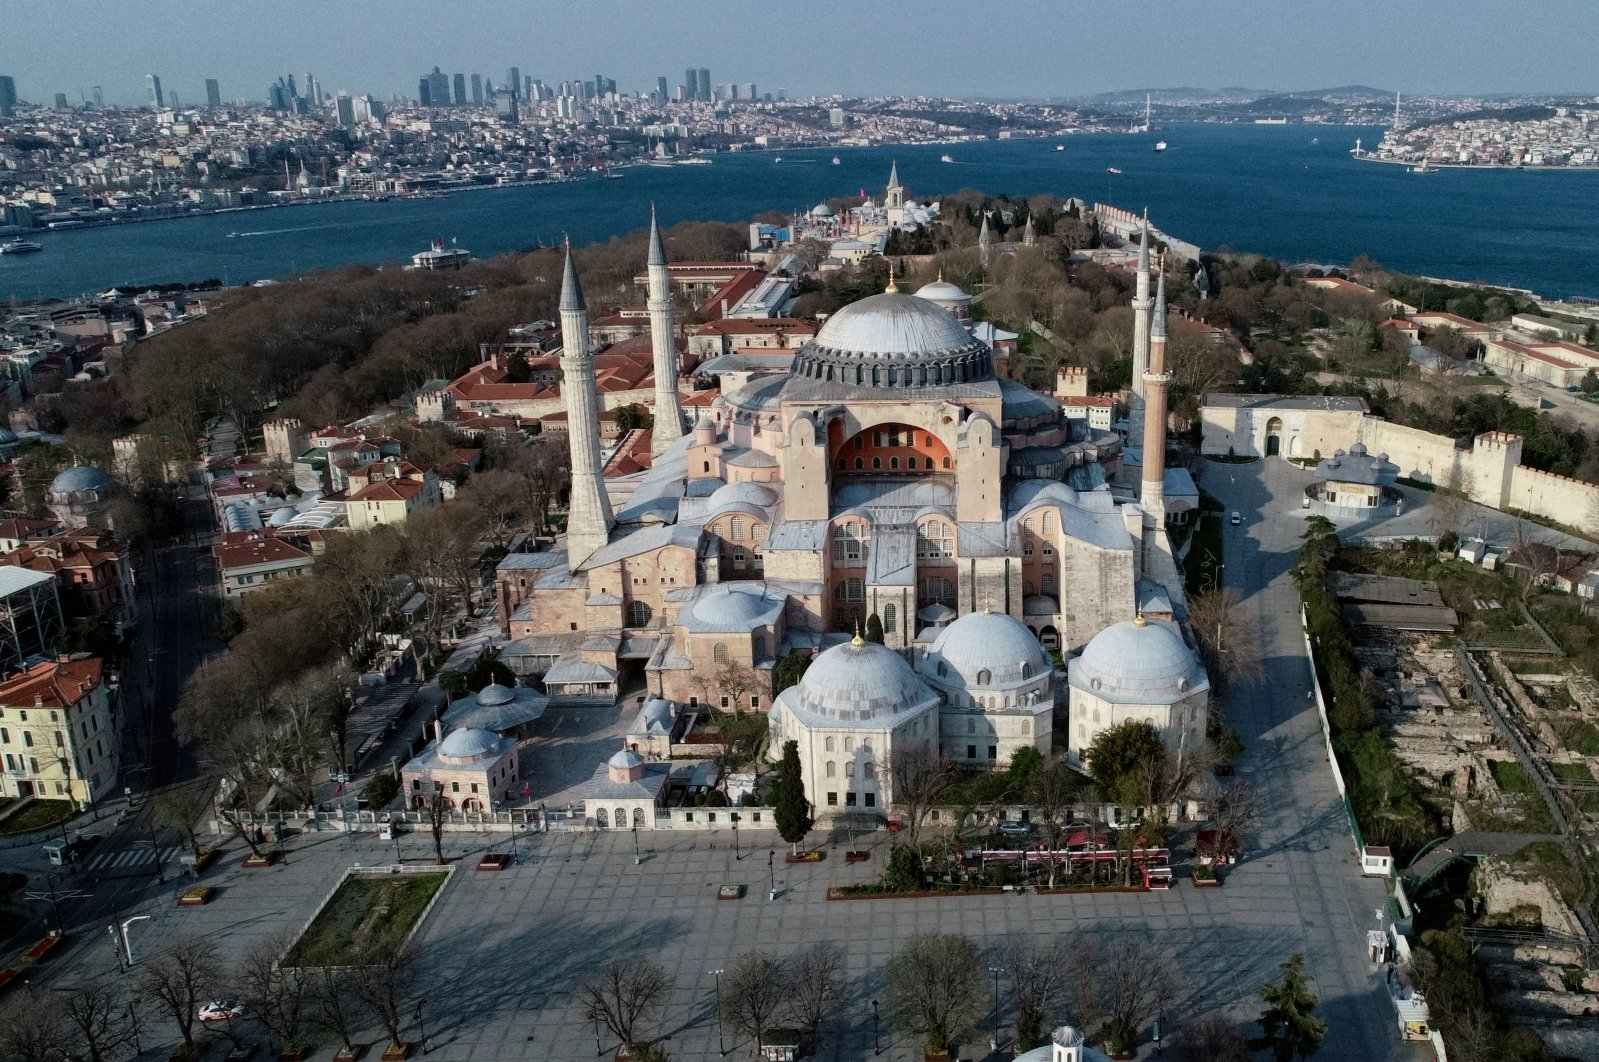 An aerial view of Hagia Sophia in Istanbul, Turkey, April 11, 2020. (REUTERS PHOTO)